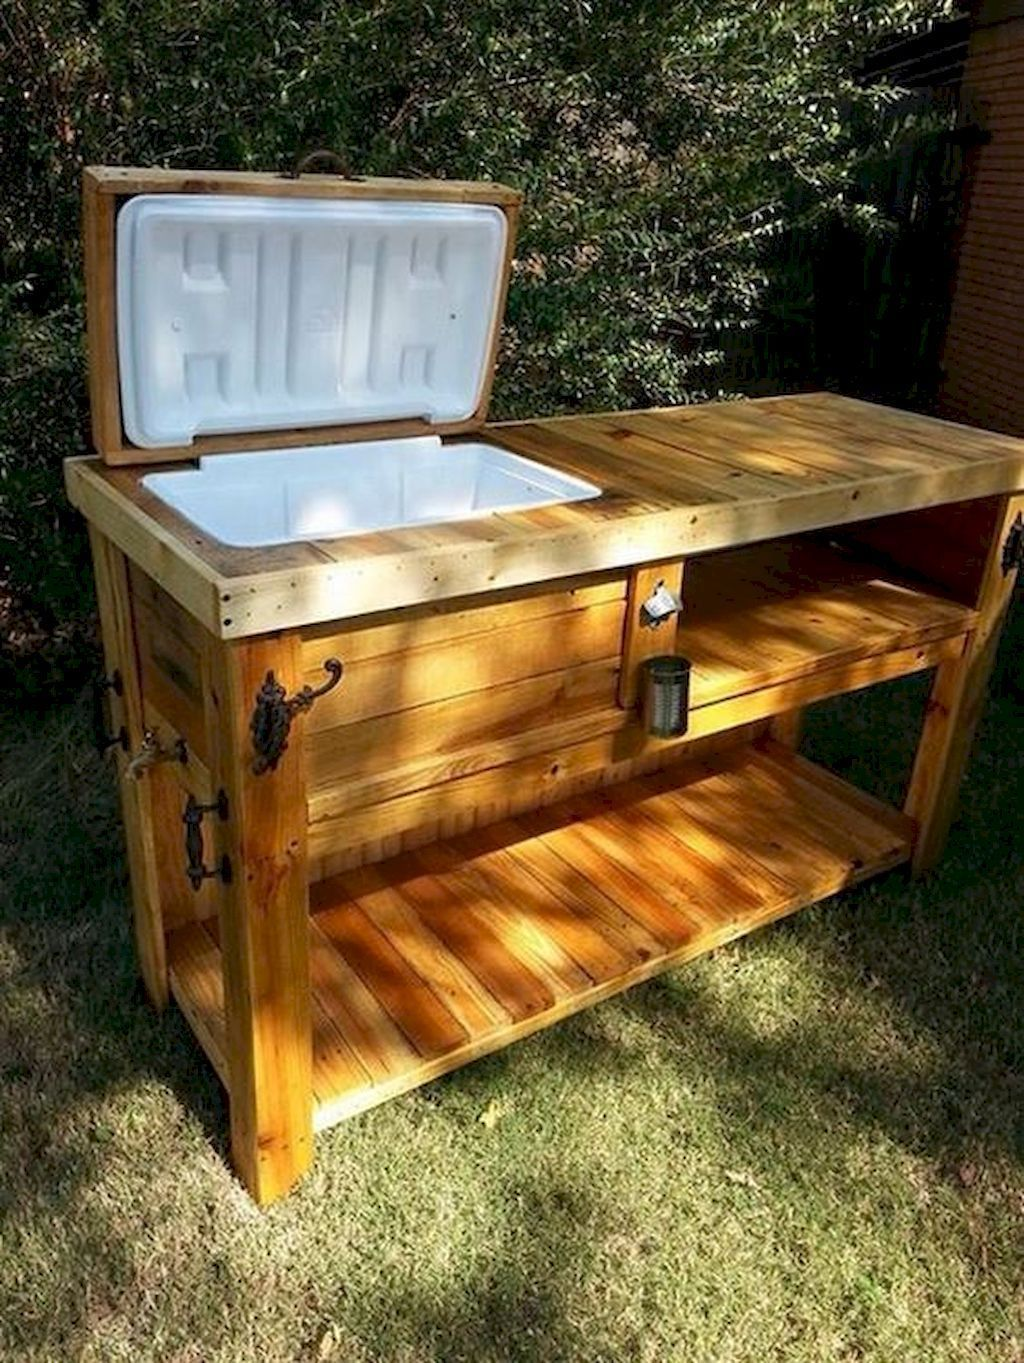 rustic Outdoor Kitchen on a budget backyards patio ideas | Kitchen on backyard beach ideas, backyard pool ideas, backyard field ideas, backyard playground, backyard wall ideas, backyard rock ideas, backyard tree forts, backyard pavilion ideas, backyard house ideas, backyard green ideas, backyard playhouse, backyard fall ideas, backyard tiki hut ideas,